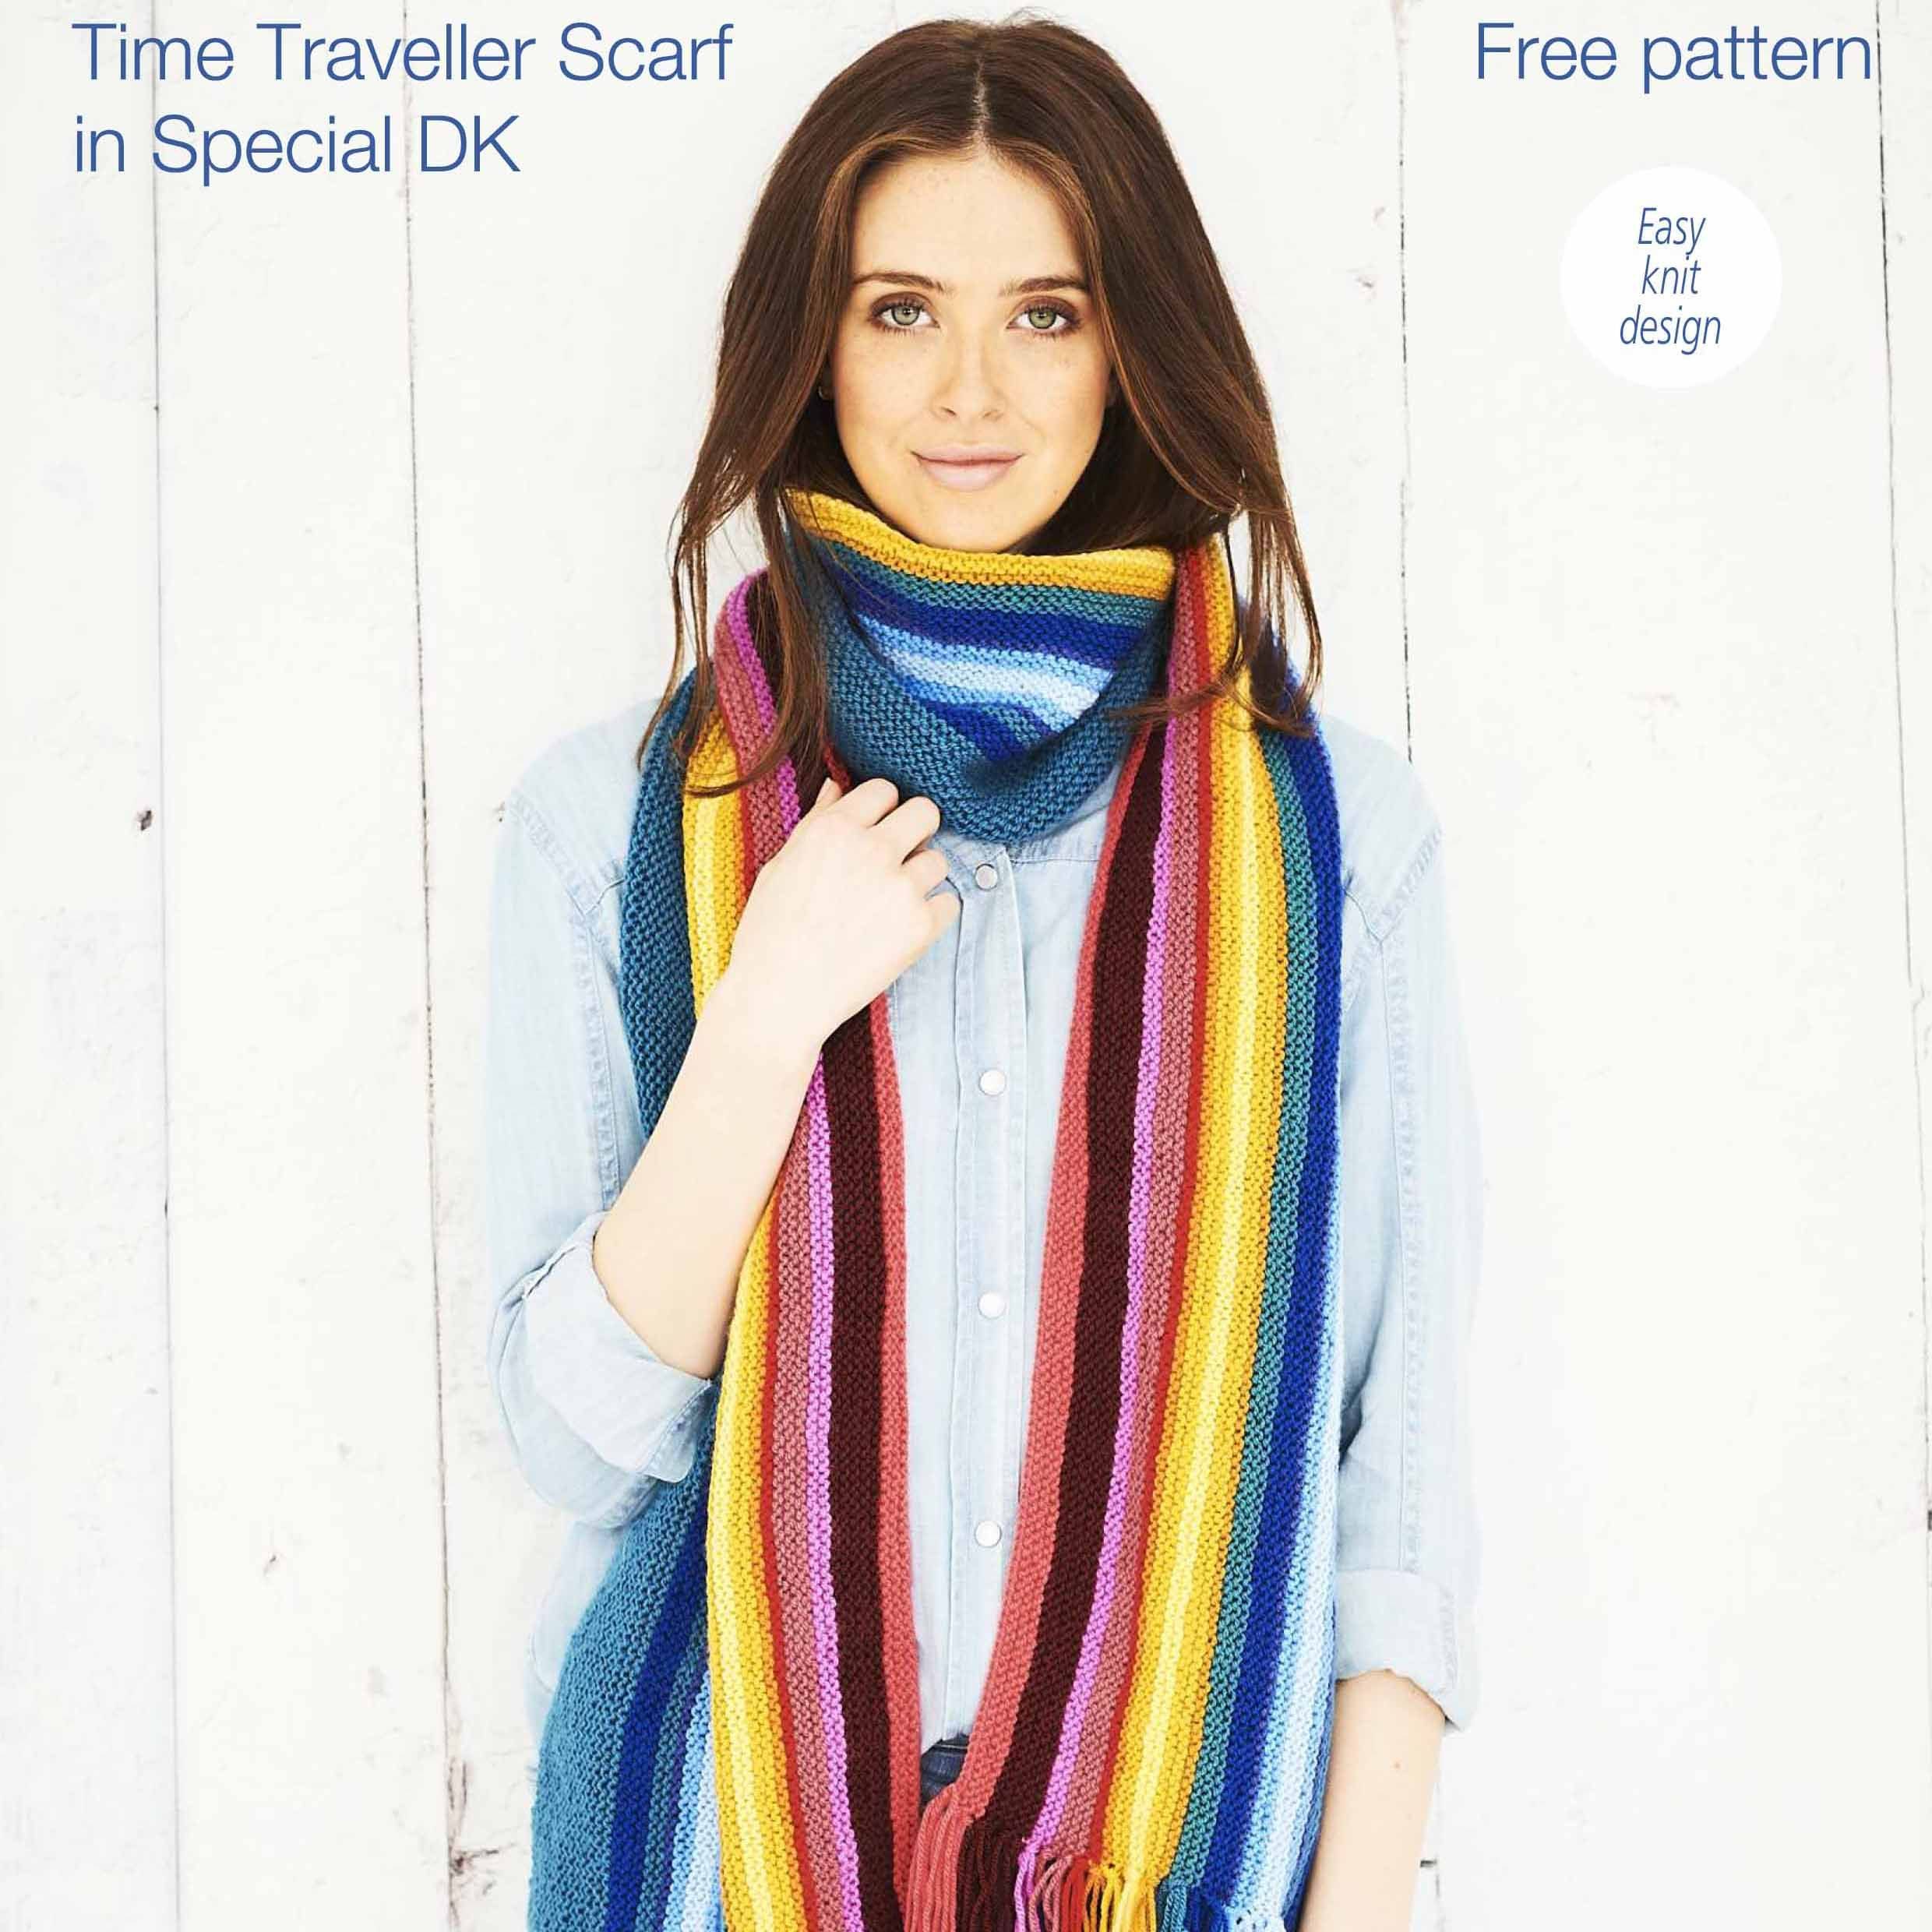 Free Knitting Pattern - Scarf